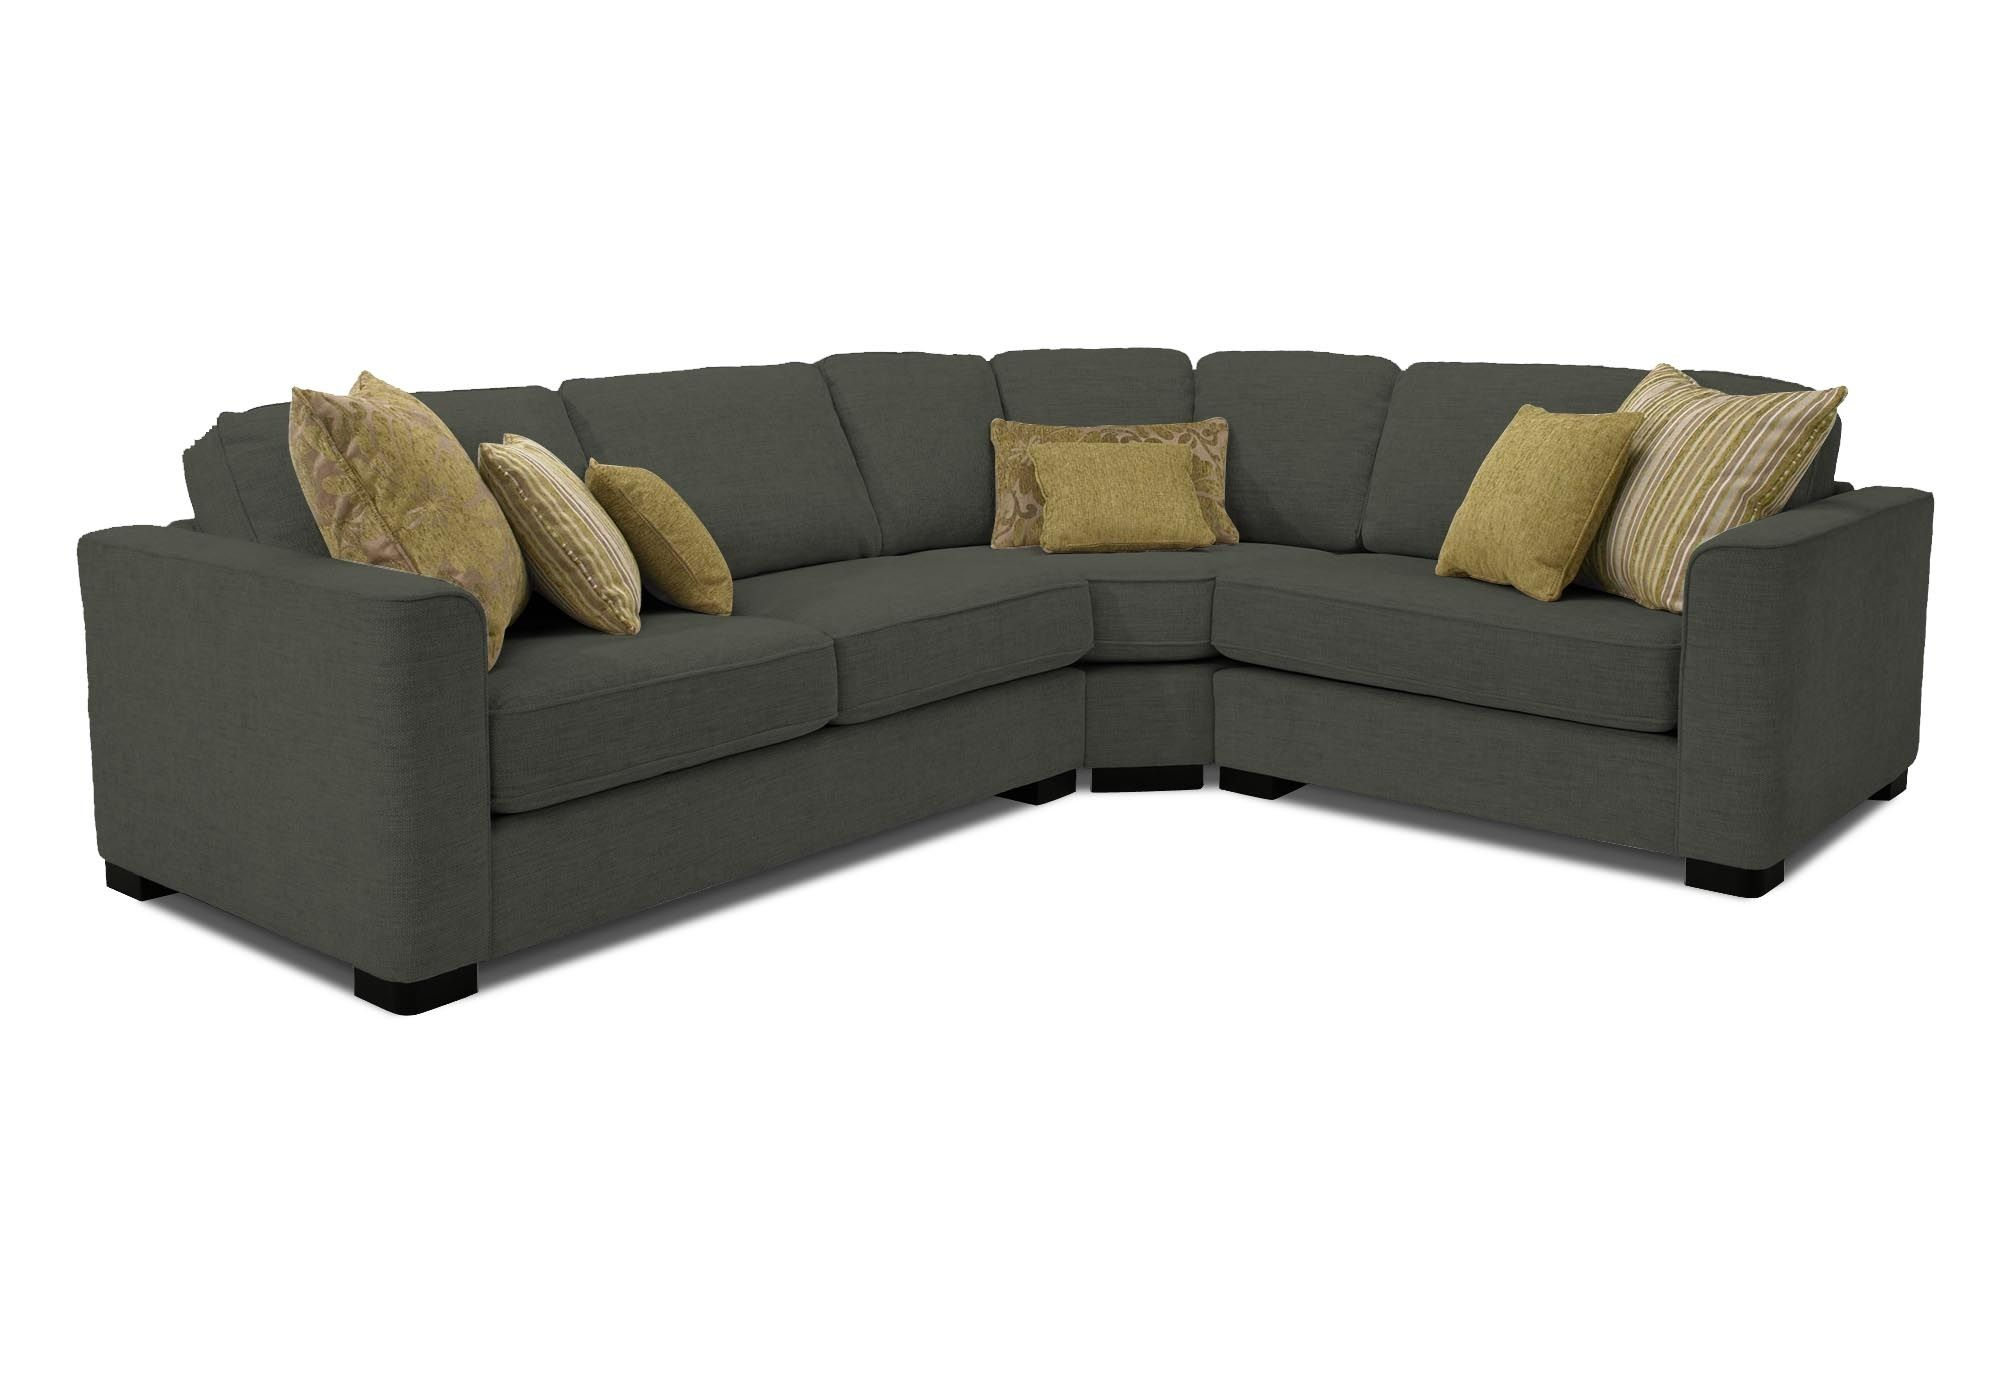 Combi 2 Rhf Eleanor Sofa Sets Corner Sofas Leather Furniture Village